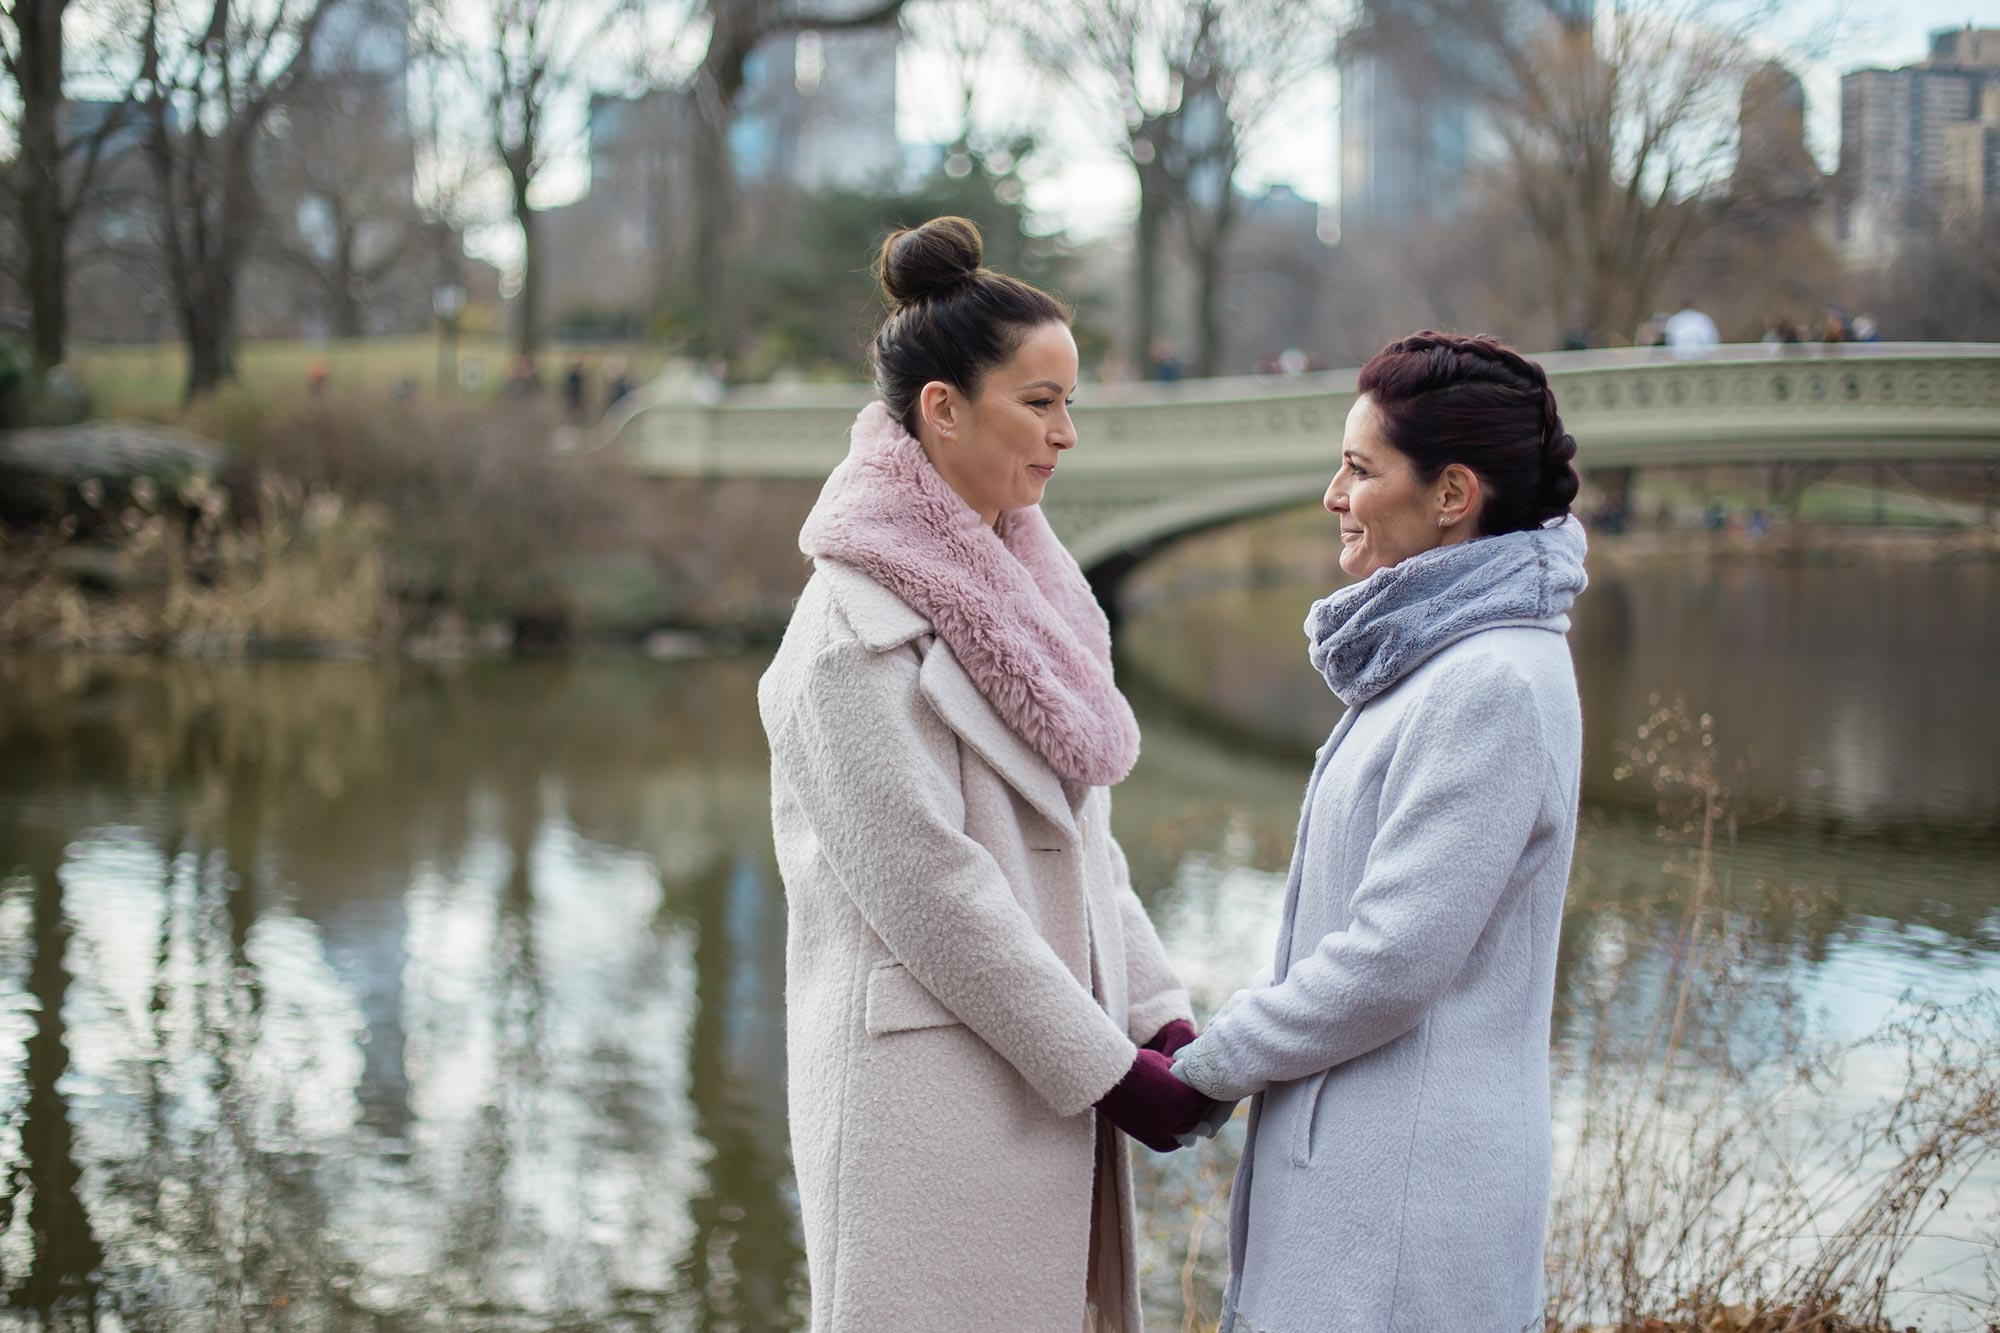 queer irish central park winter elopement kate alison photography brides holding hands by lake, bridge in background